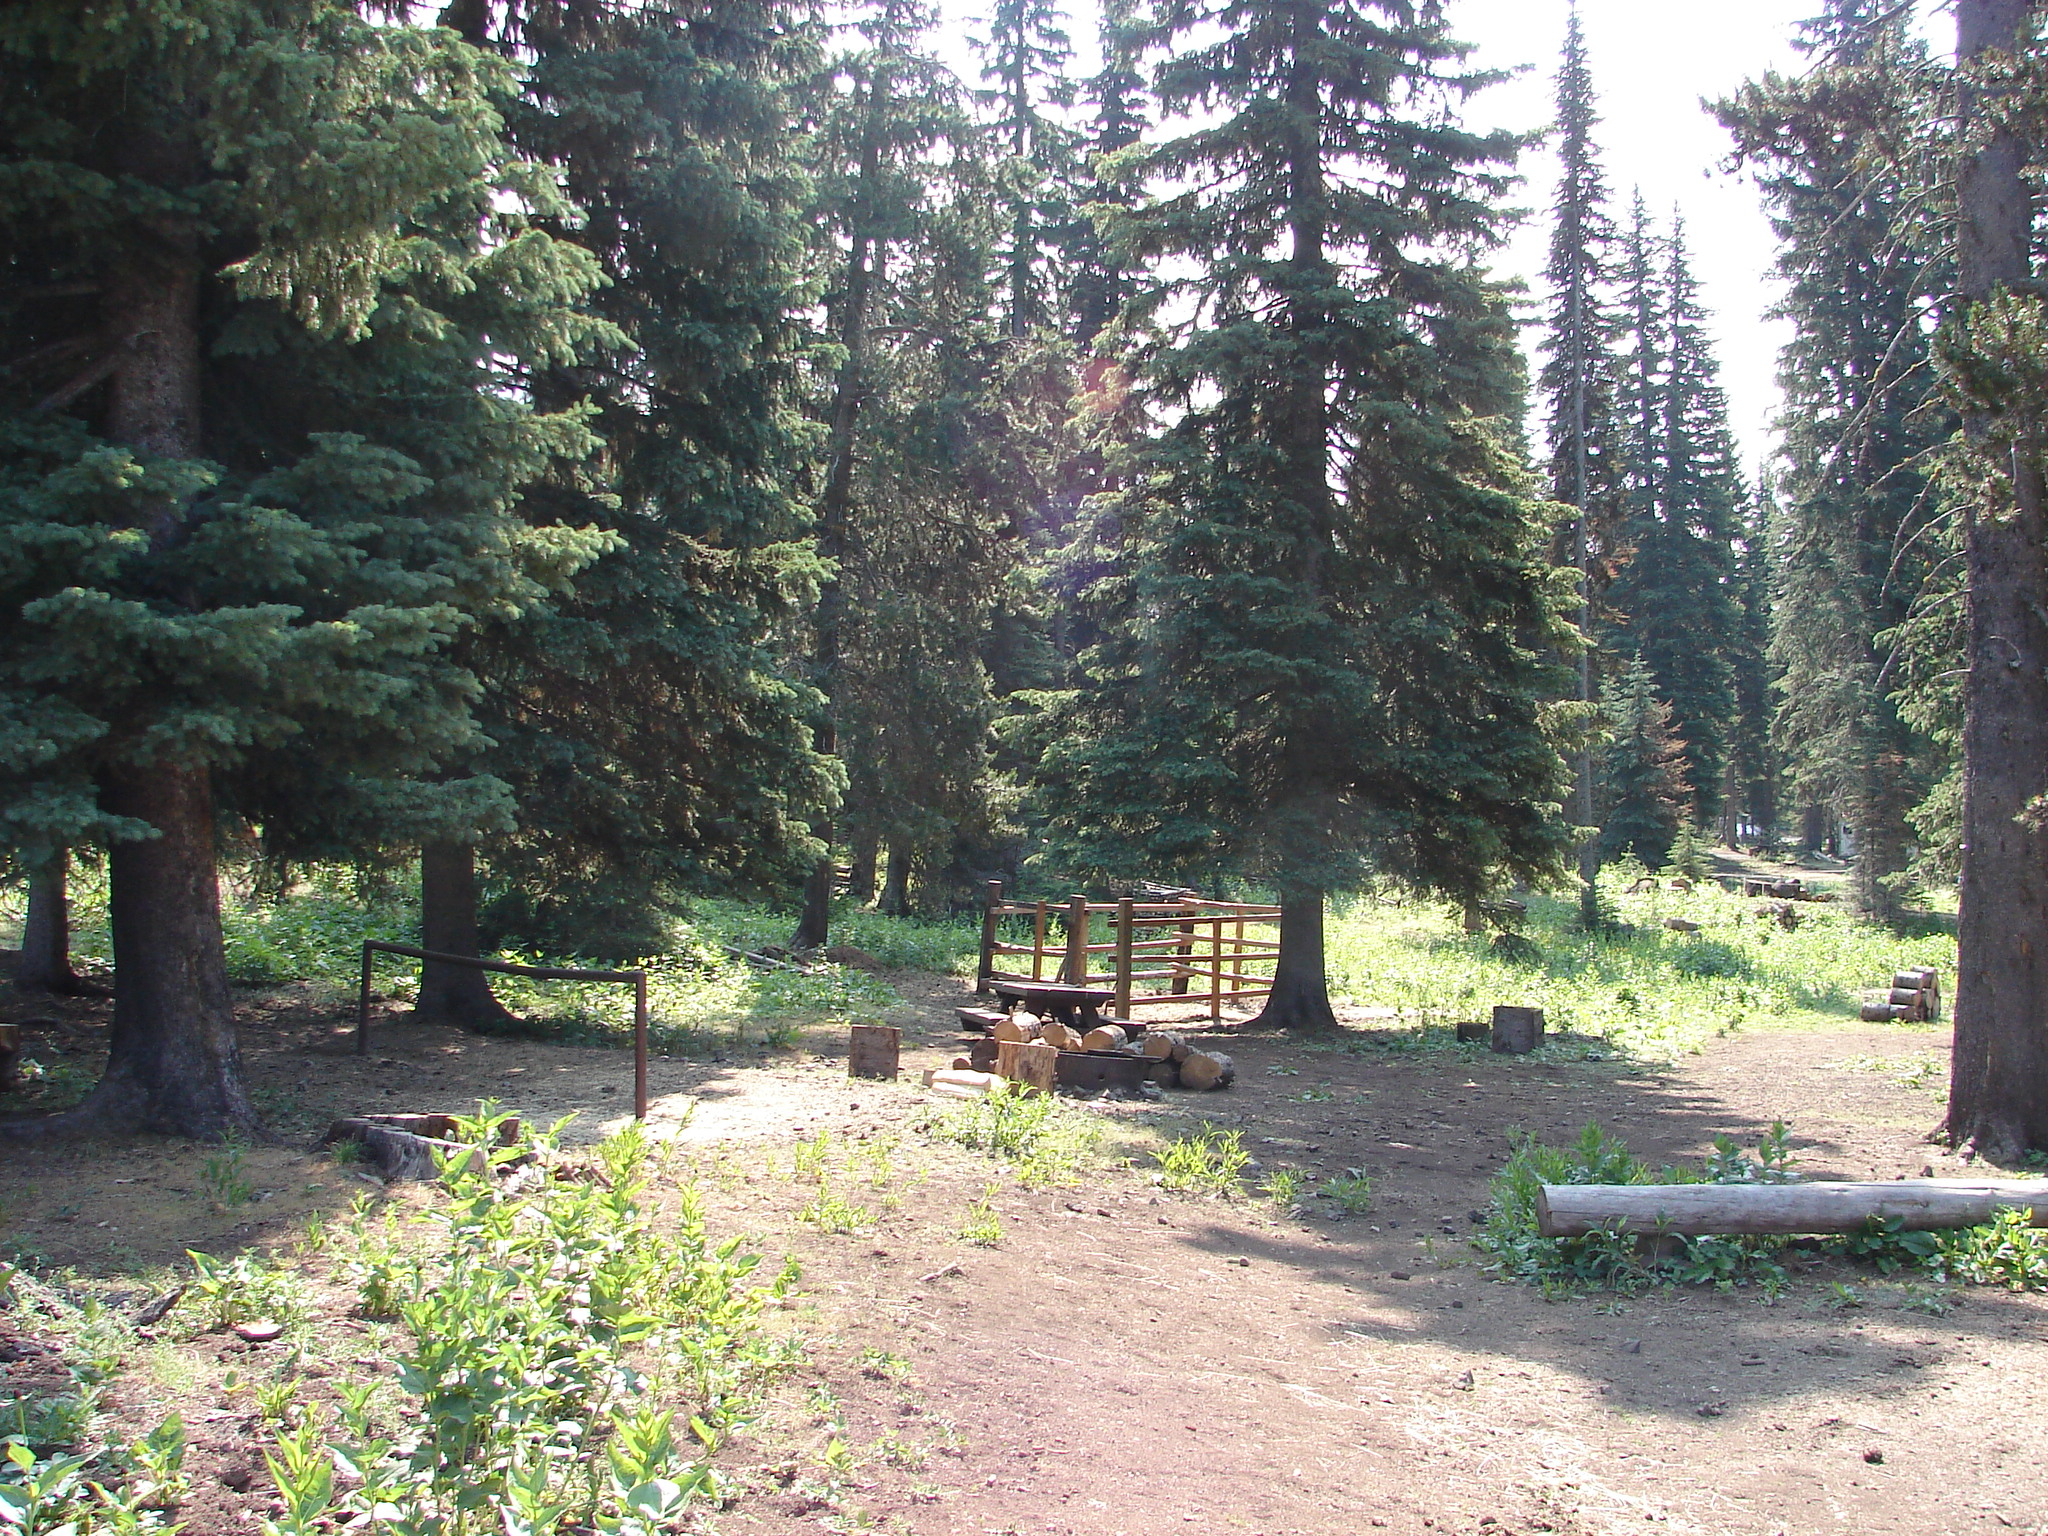 Horse corrals and campsite in pine and fir trees